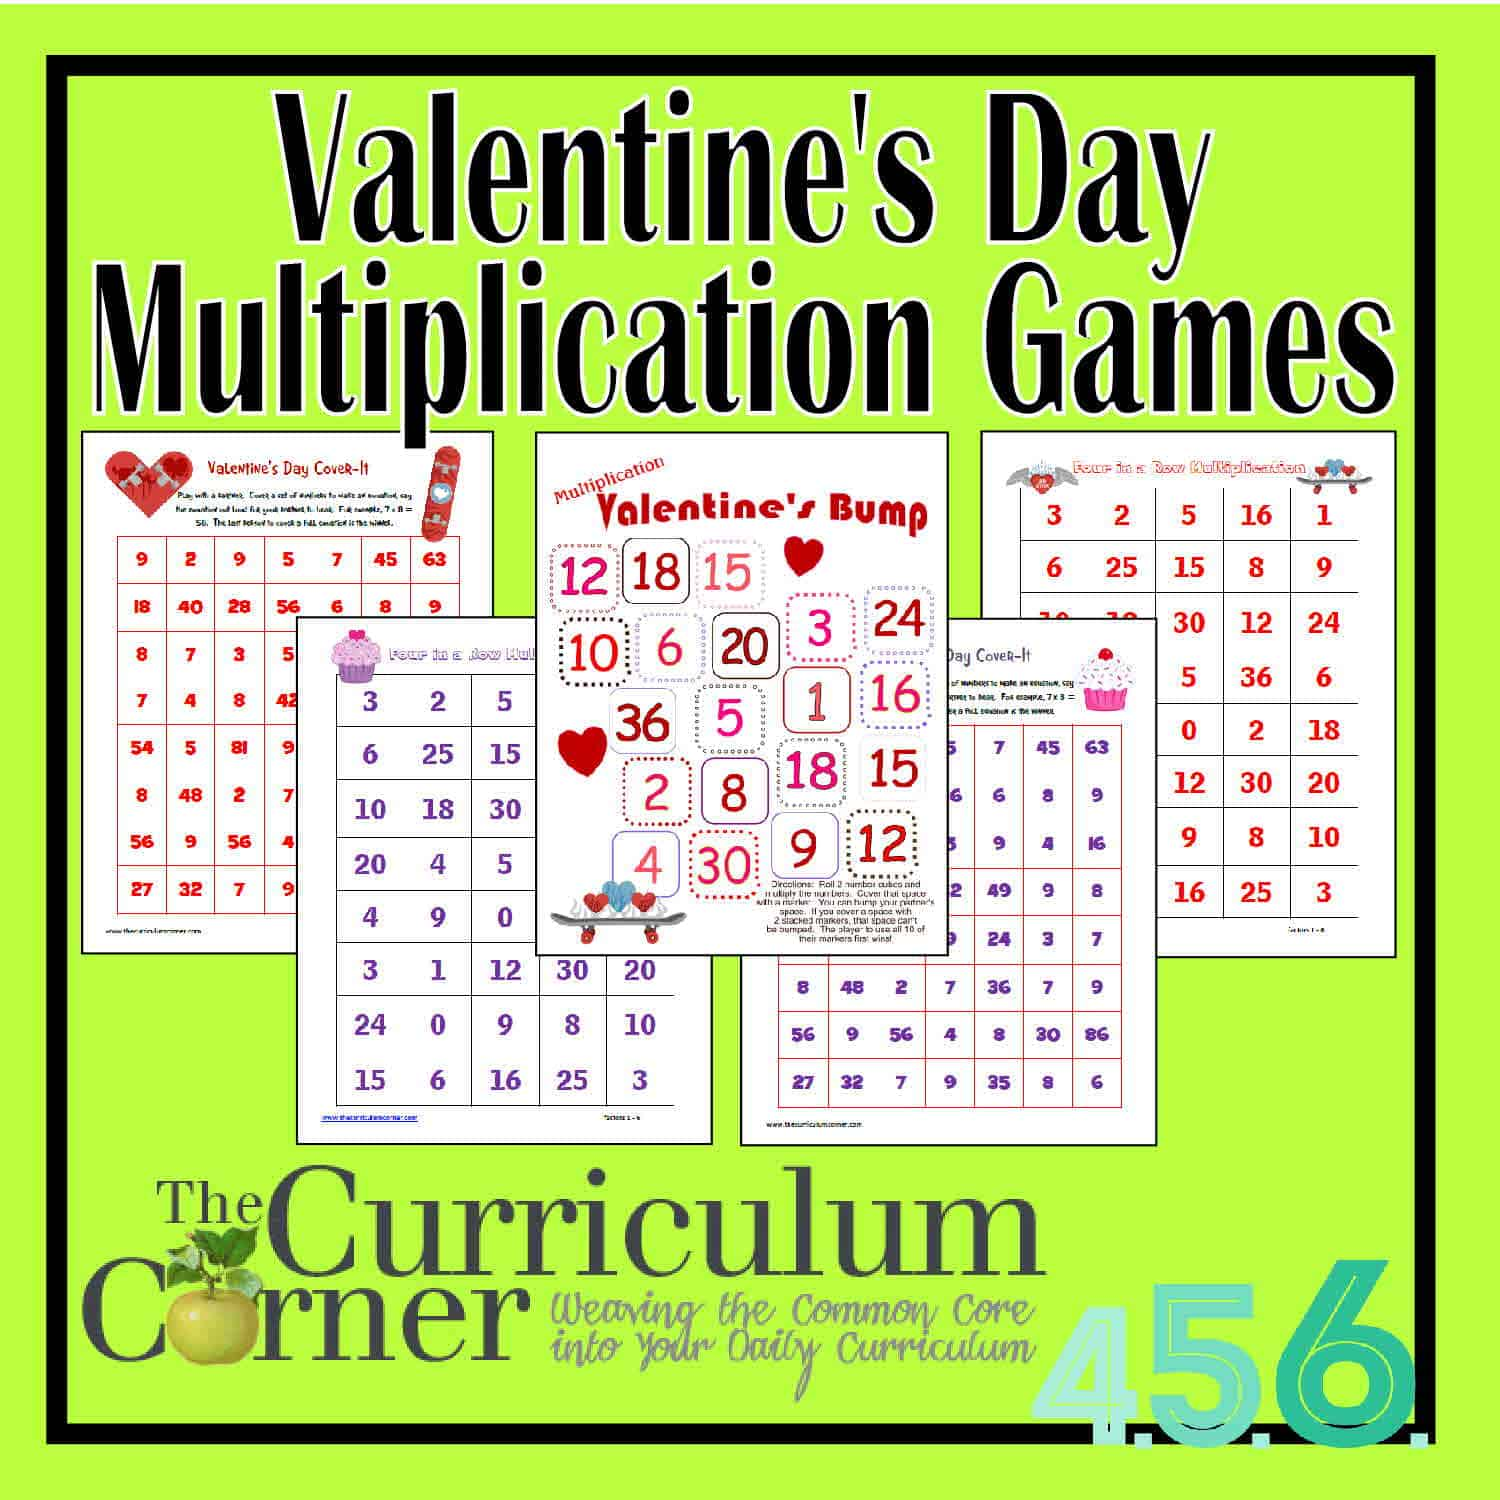 photograph about Multiplication Games Printable identify Valentines Working day Multiplication Online games - The Curriculum Corner